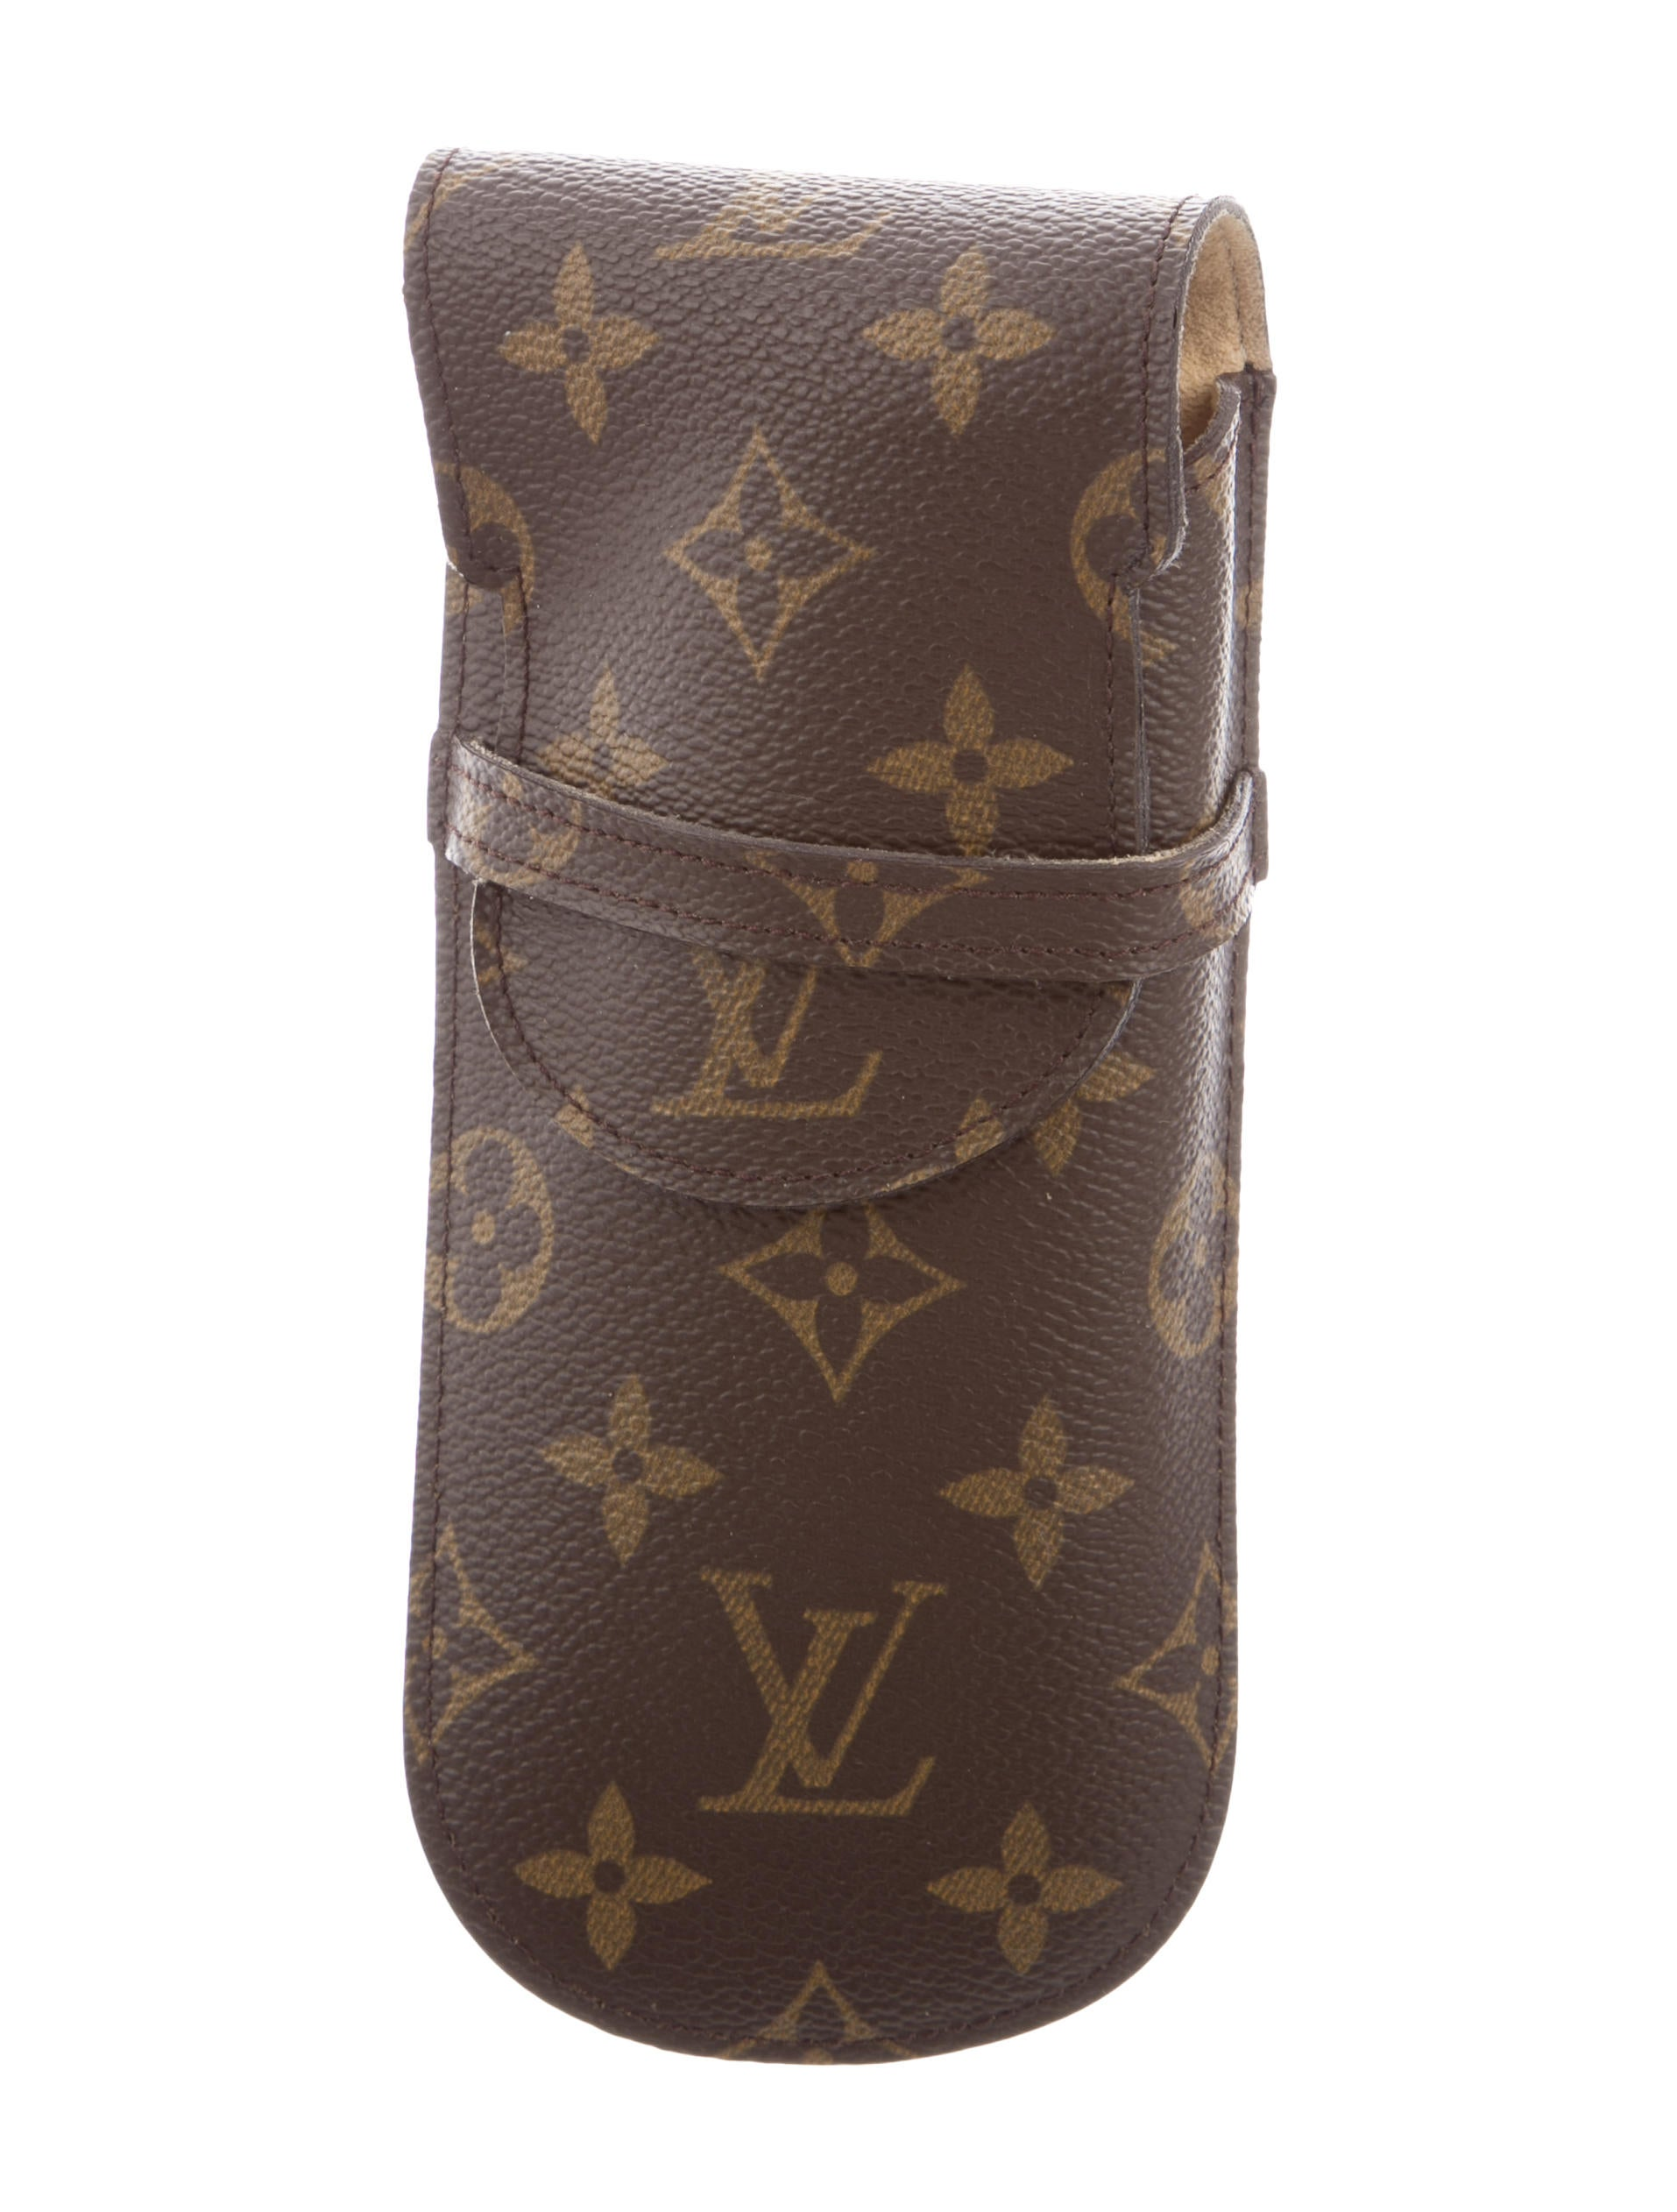 huge discount 9da38 8a55e Monogram Glasses Case